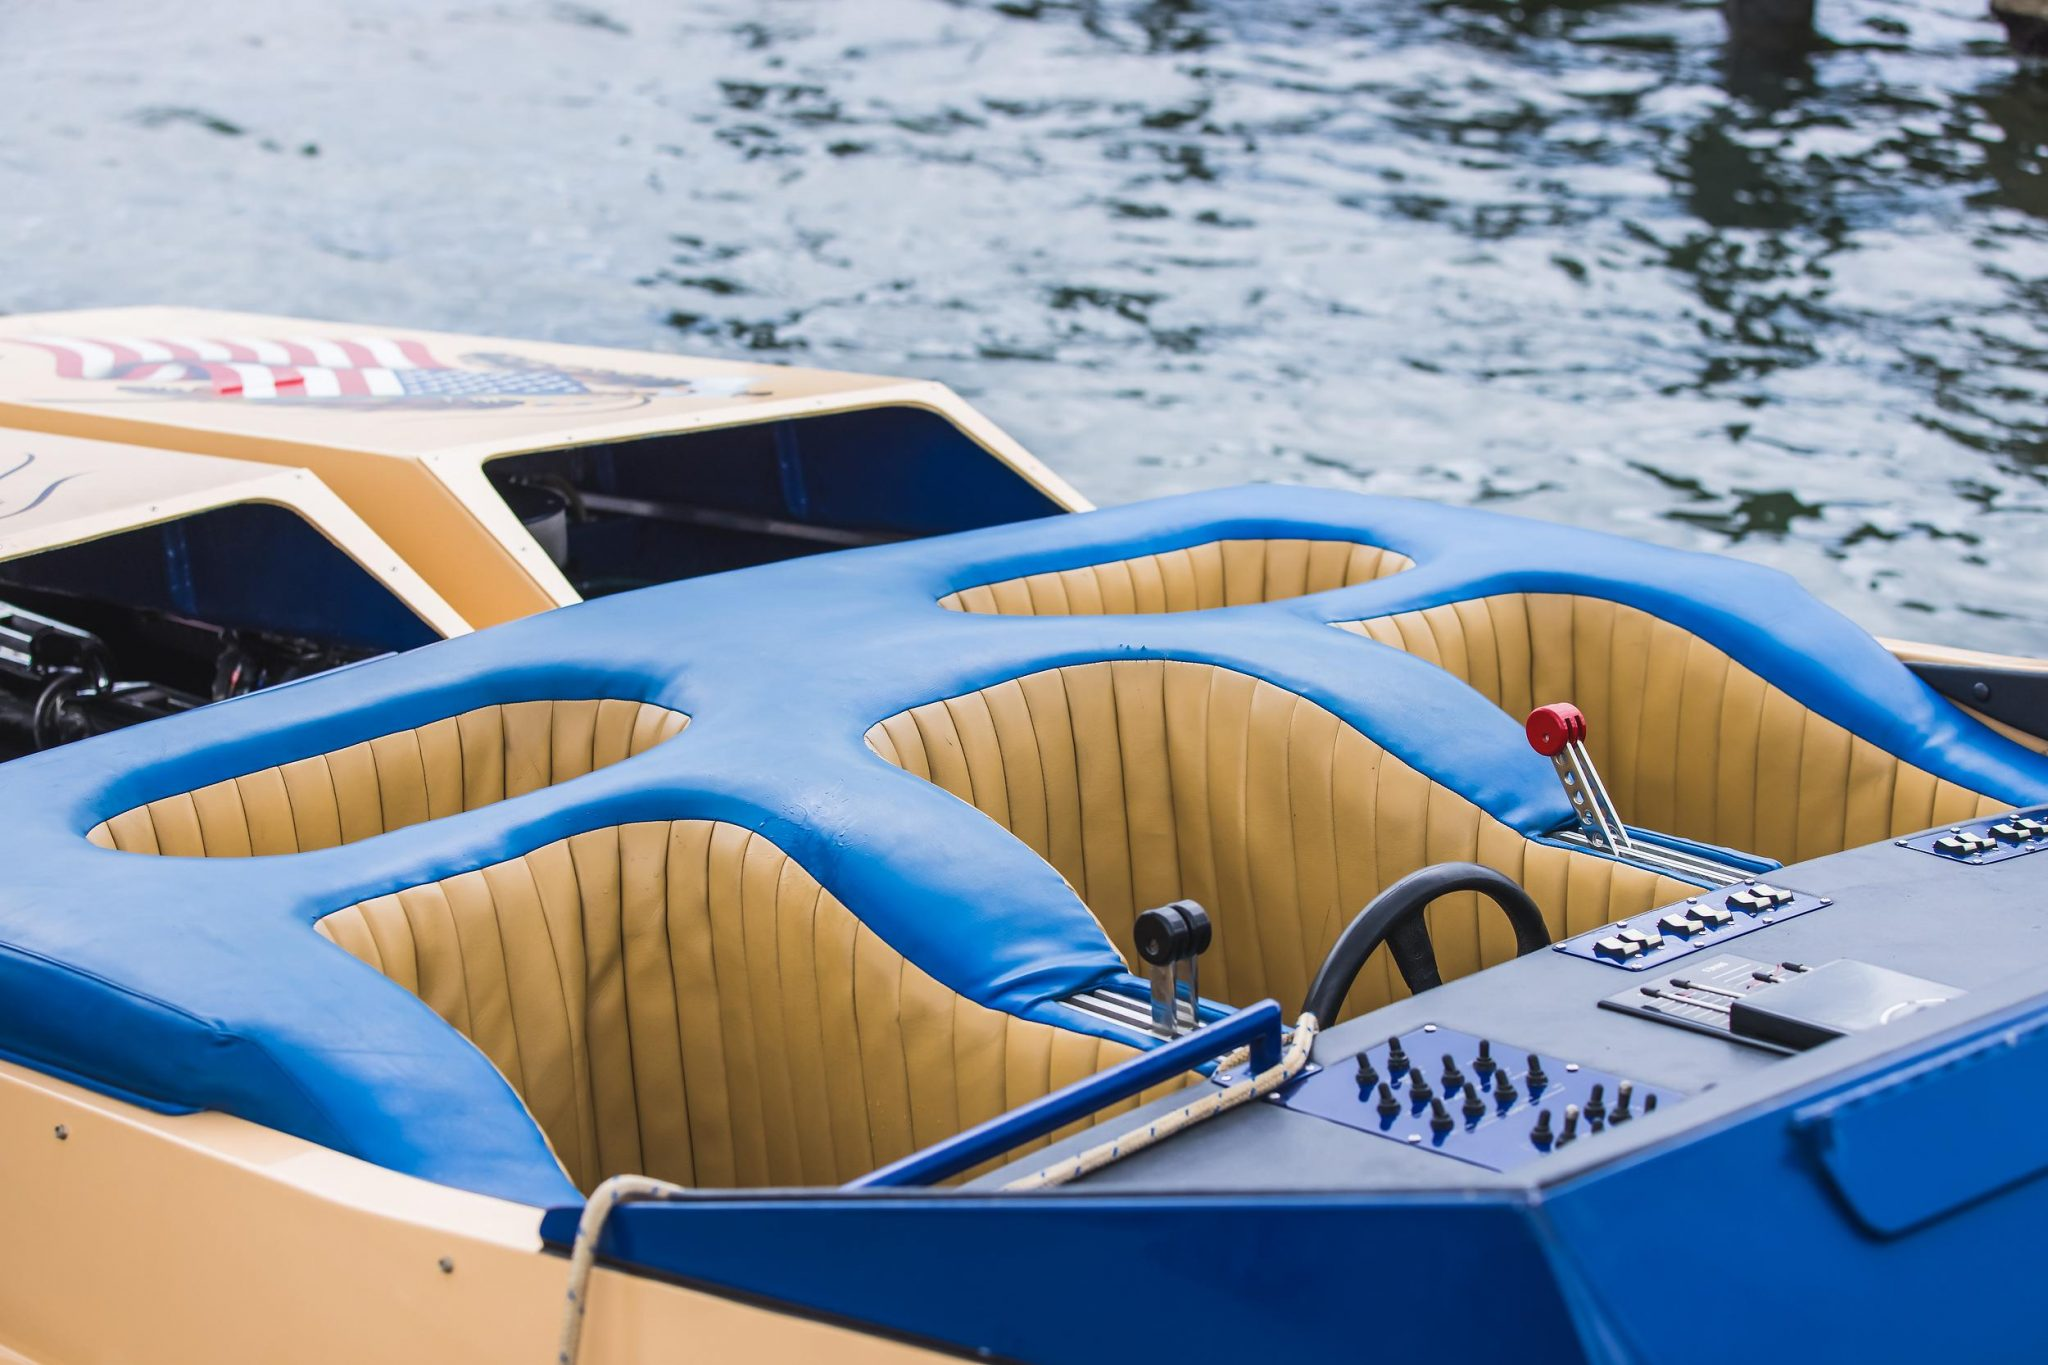 1984 Apache Offshore Powerboat Warpath seating